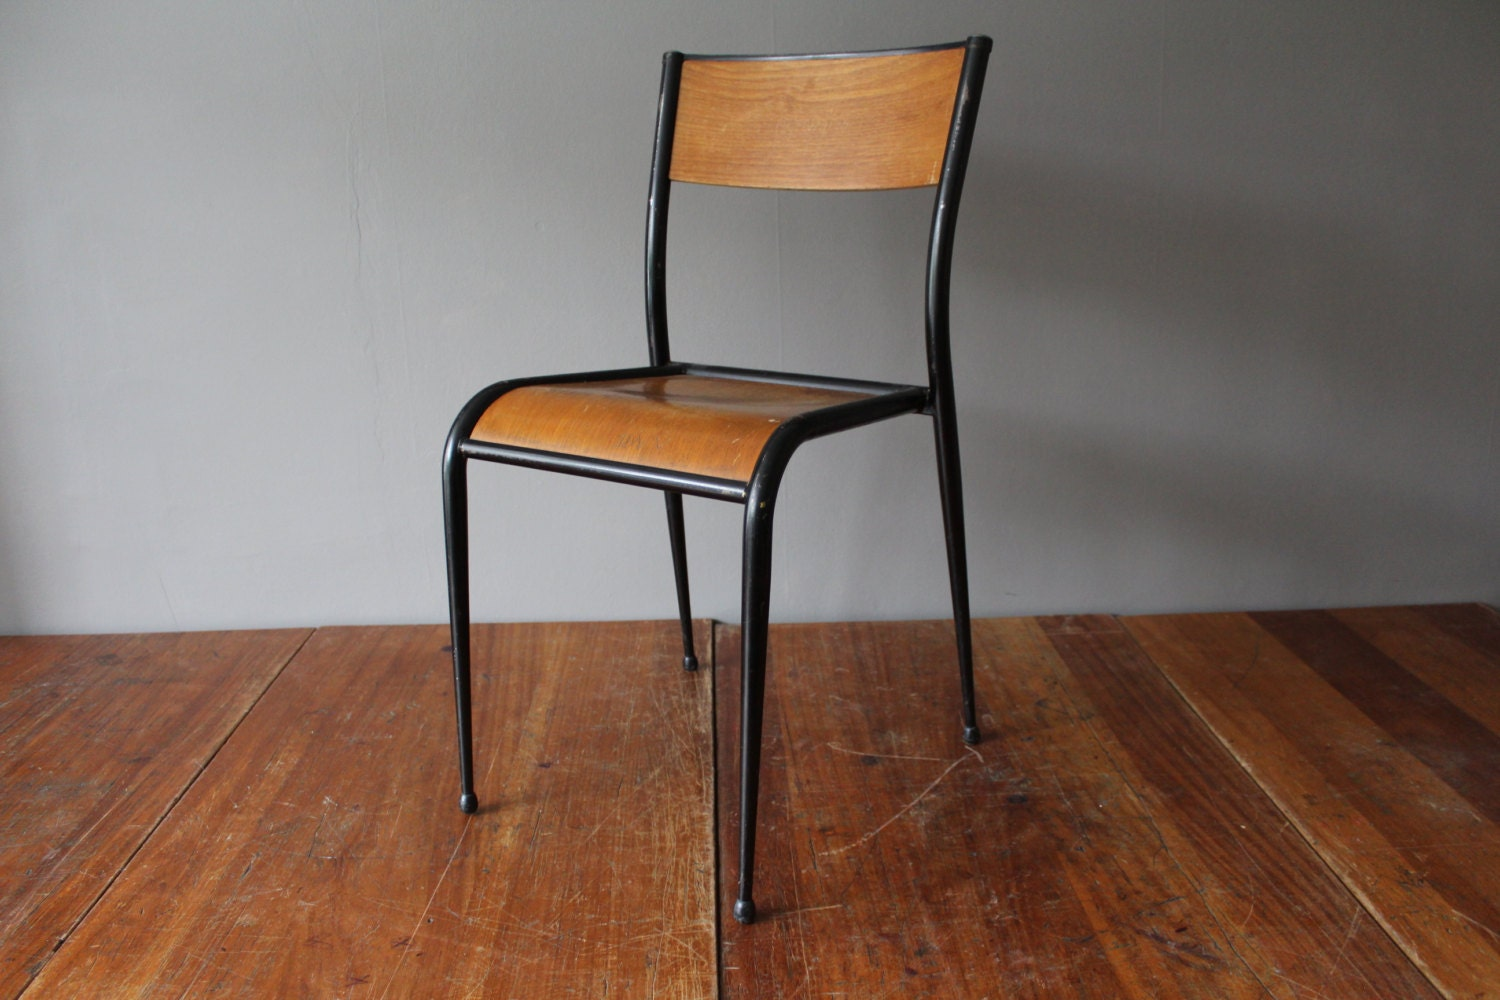 Vintage 1960s mullca model 511 french school chair haute for Chaise mullca 511